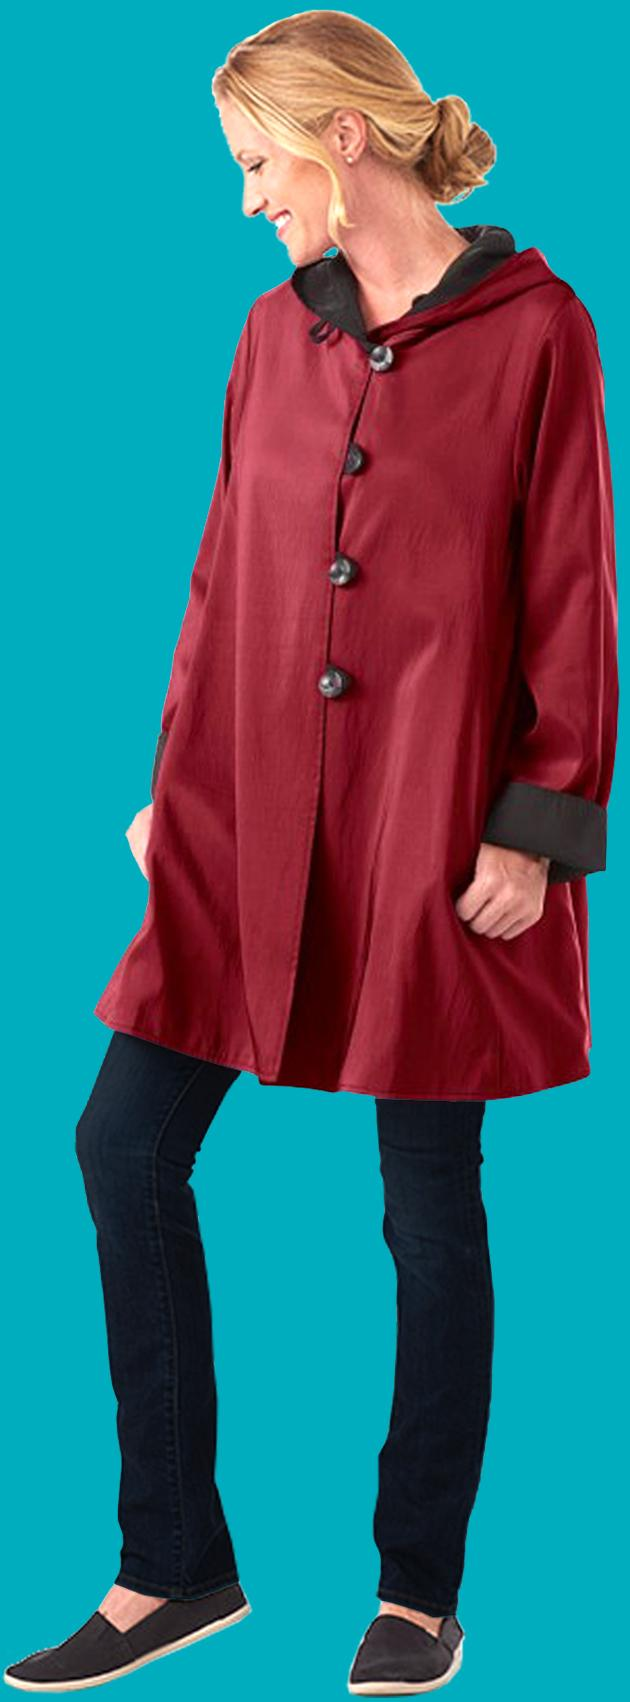 Ruby and Black Reversible Water Repellant Jacket